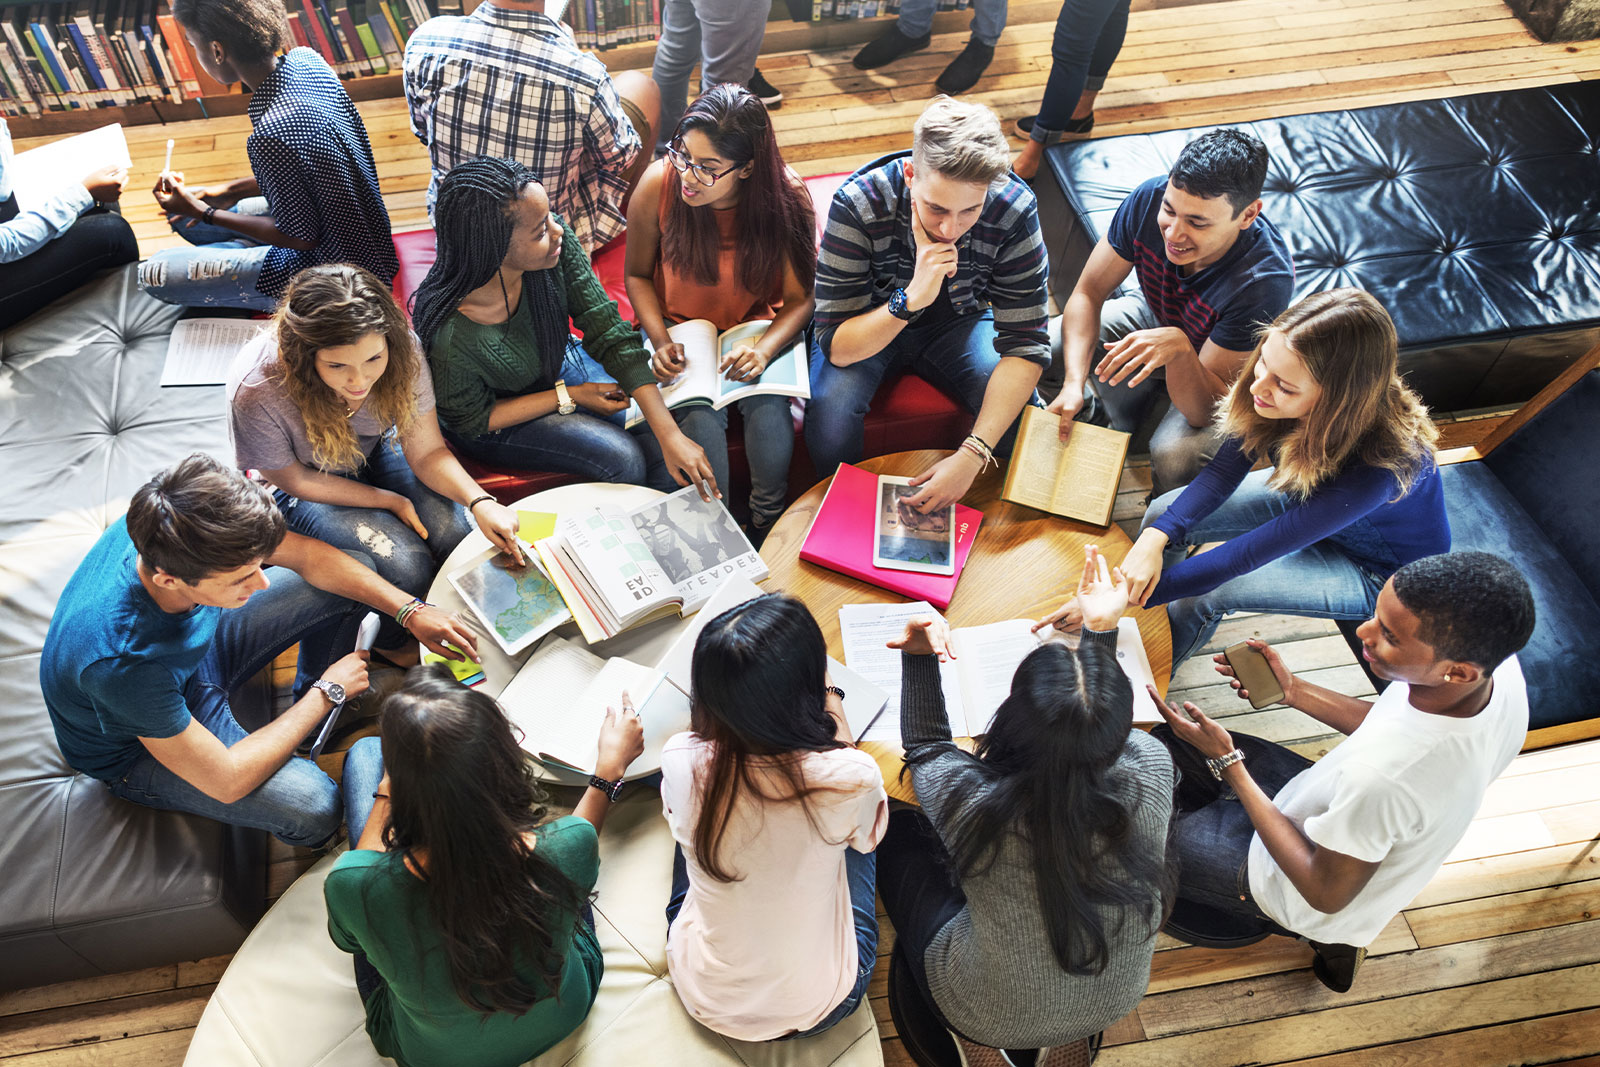 Students Through the Decades: How Have They Changed?